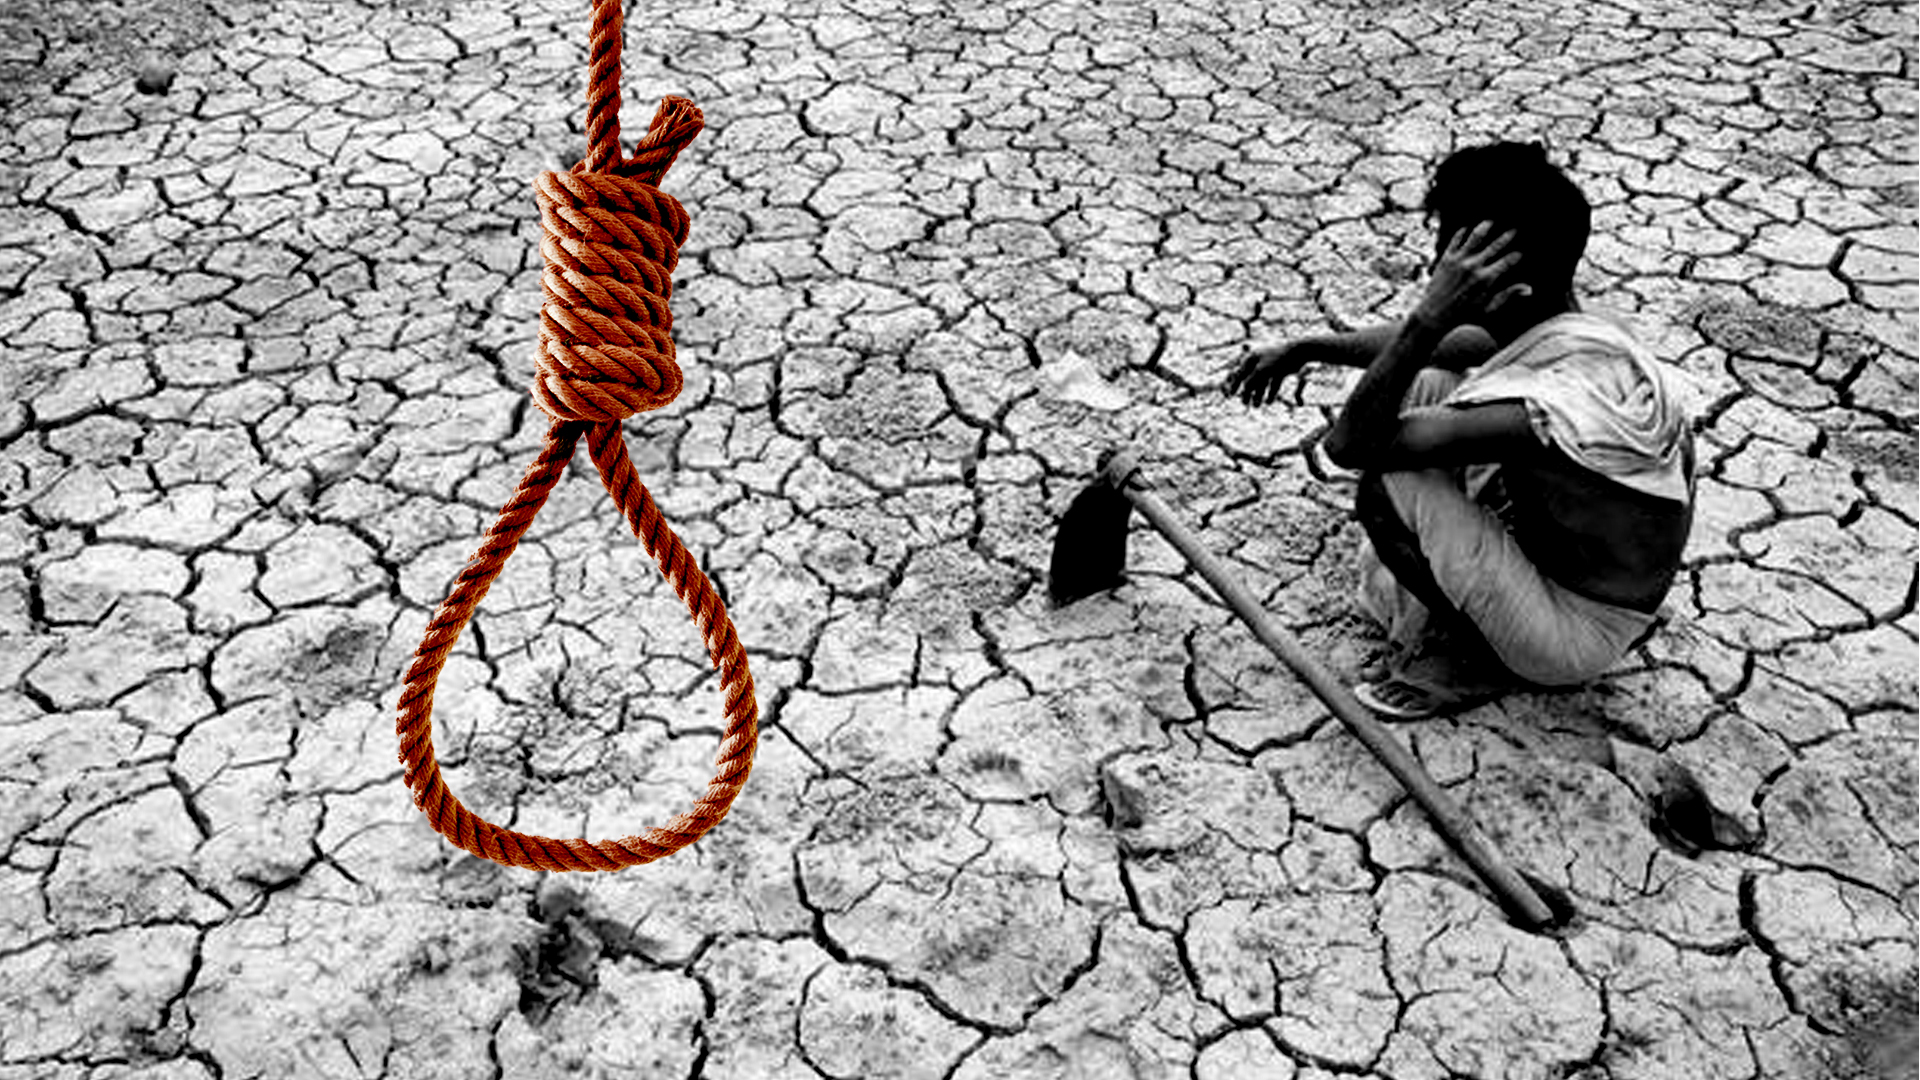 Over 800 Farmers Committed Suicide in Maharashtra This Year, Says Report